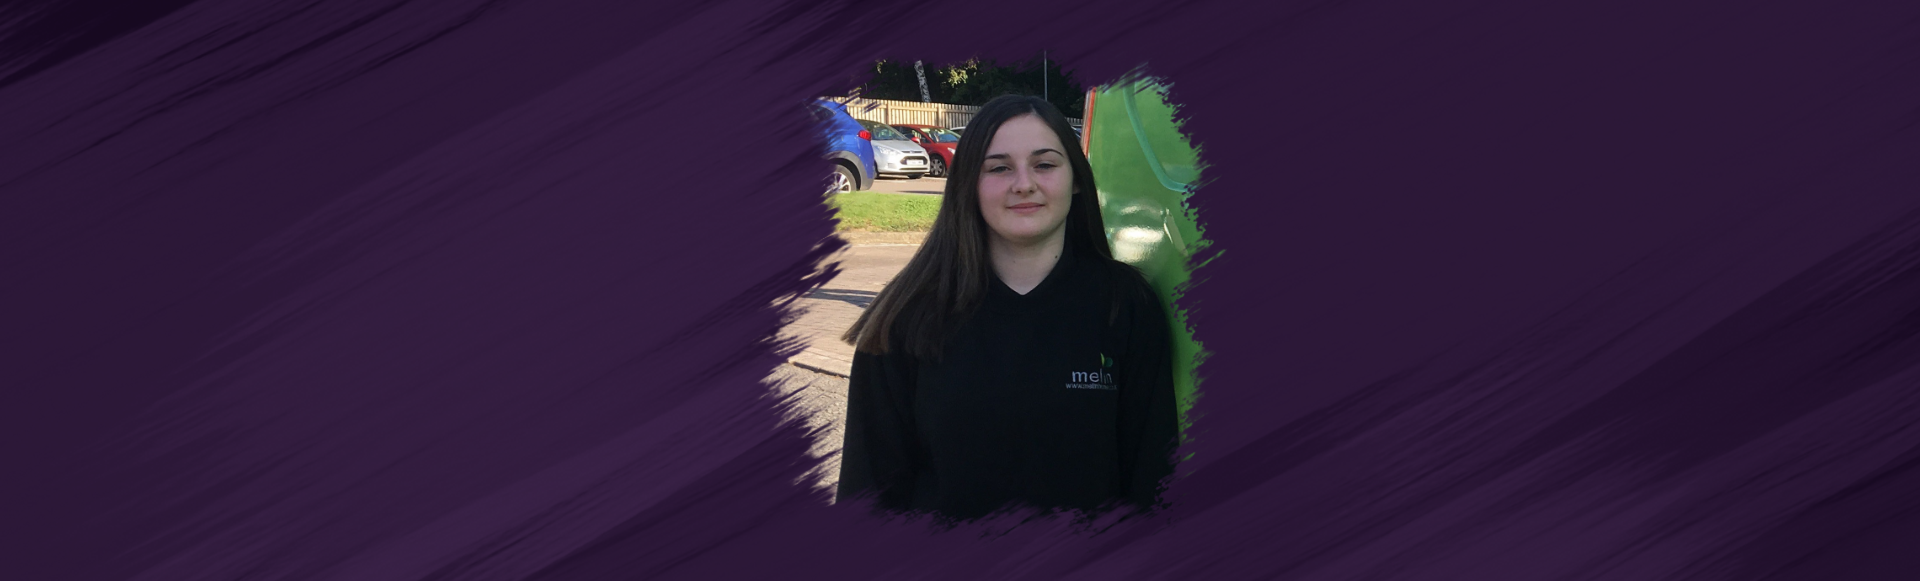 <span class='customfont'>Katie</span> loves knowing that her job keeps people safe in their homes